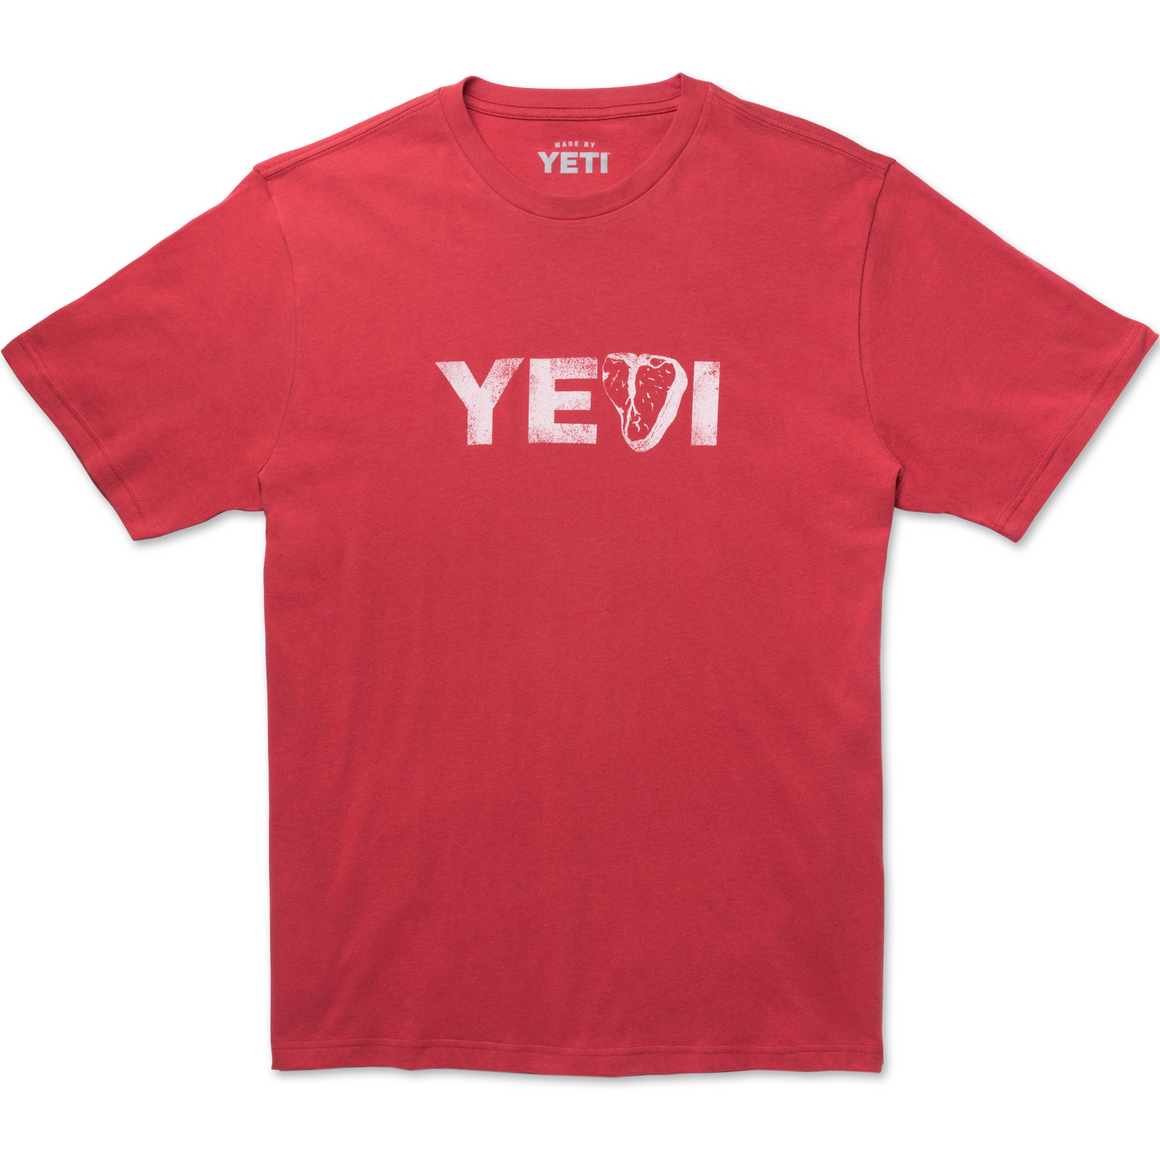 YETI Steak's On T-Shirt - The Kansas City BBQ Store